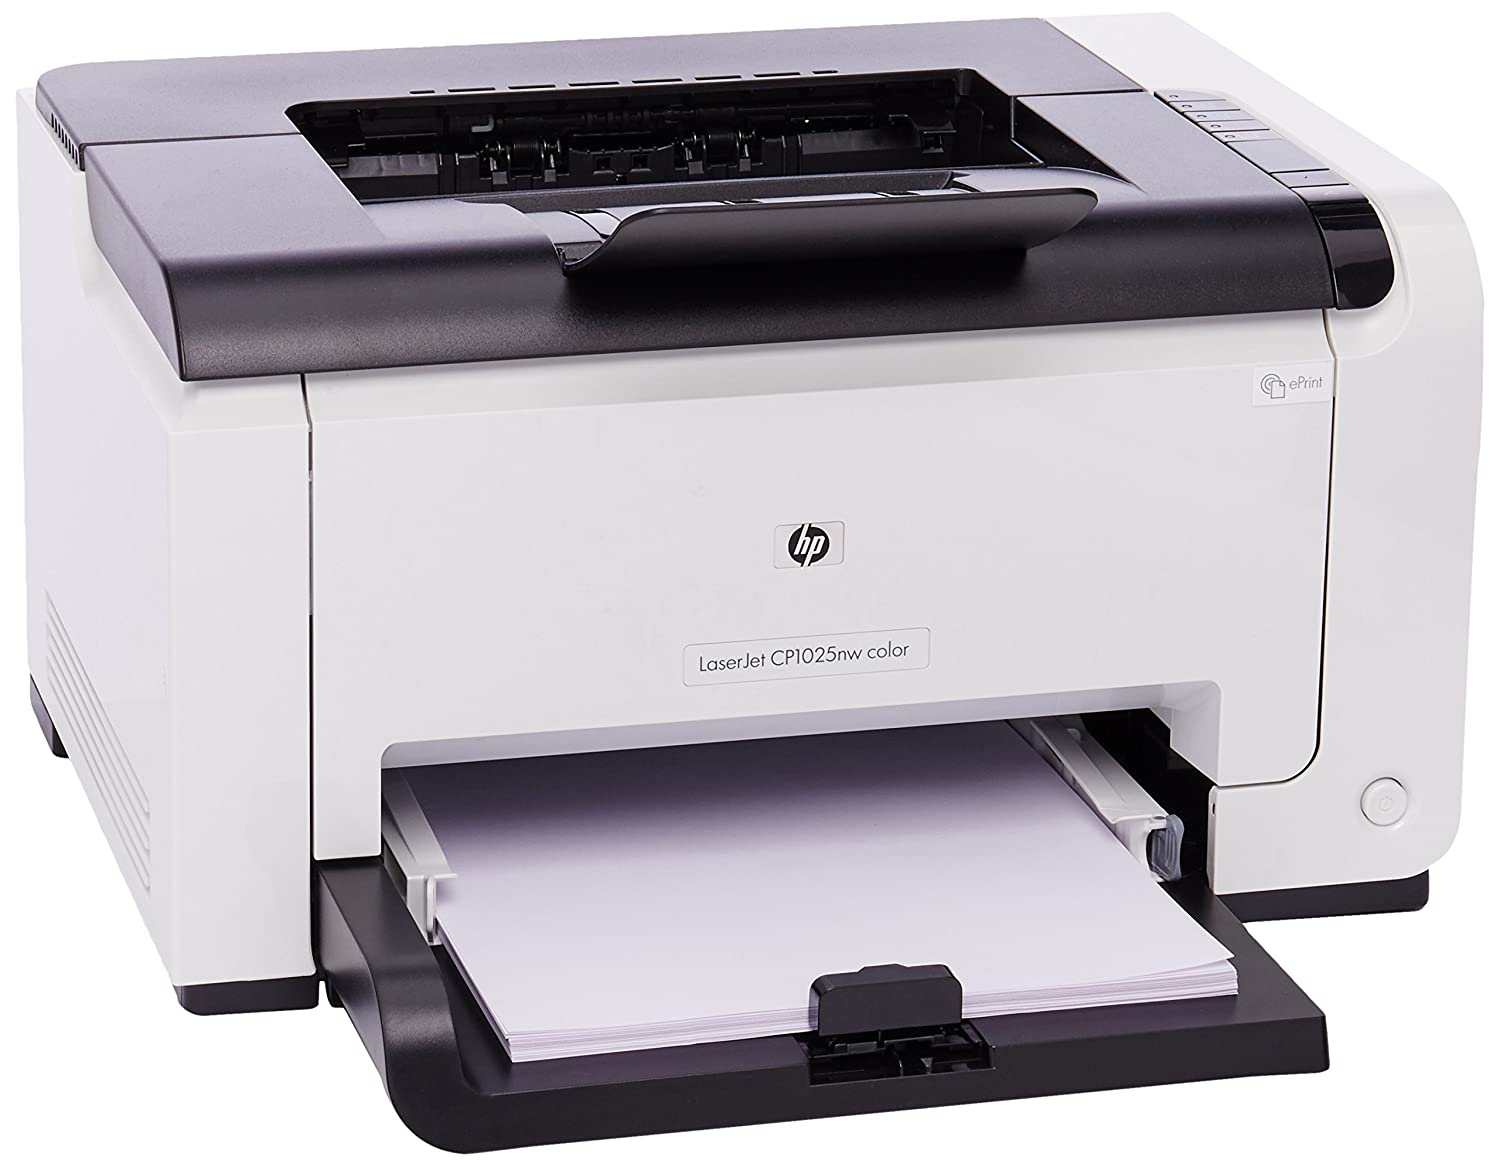 hp laserjet pro cp1025nw colour network wi fi laser printer ebay. Black Bedroom Furniture Sets. Home Design Ideas